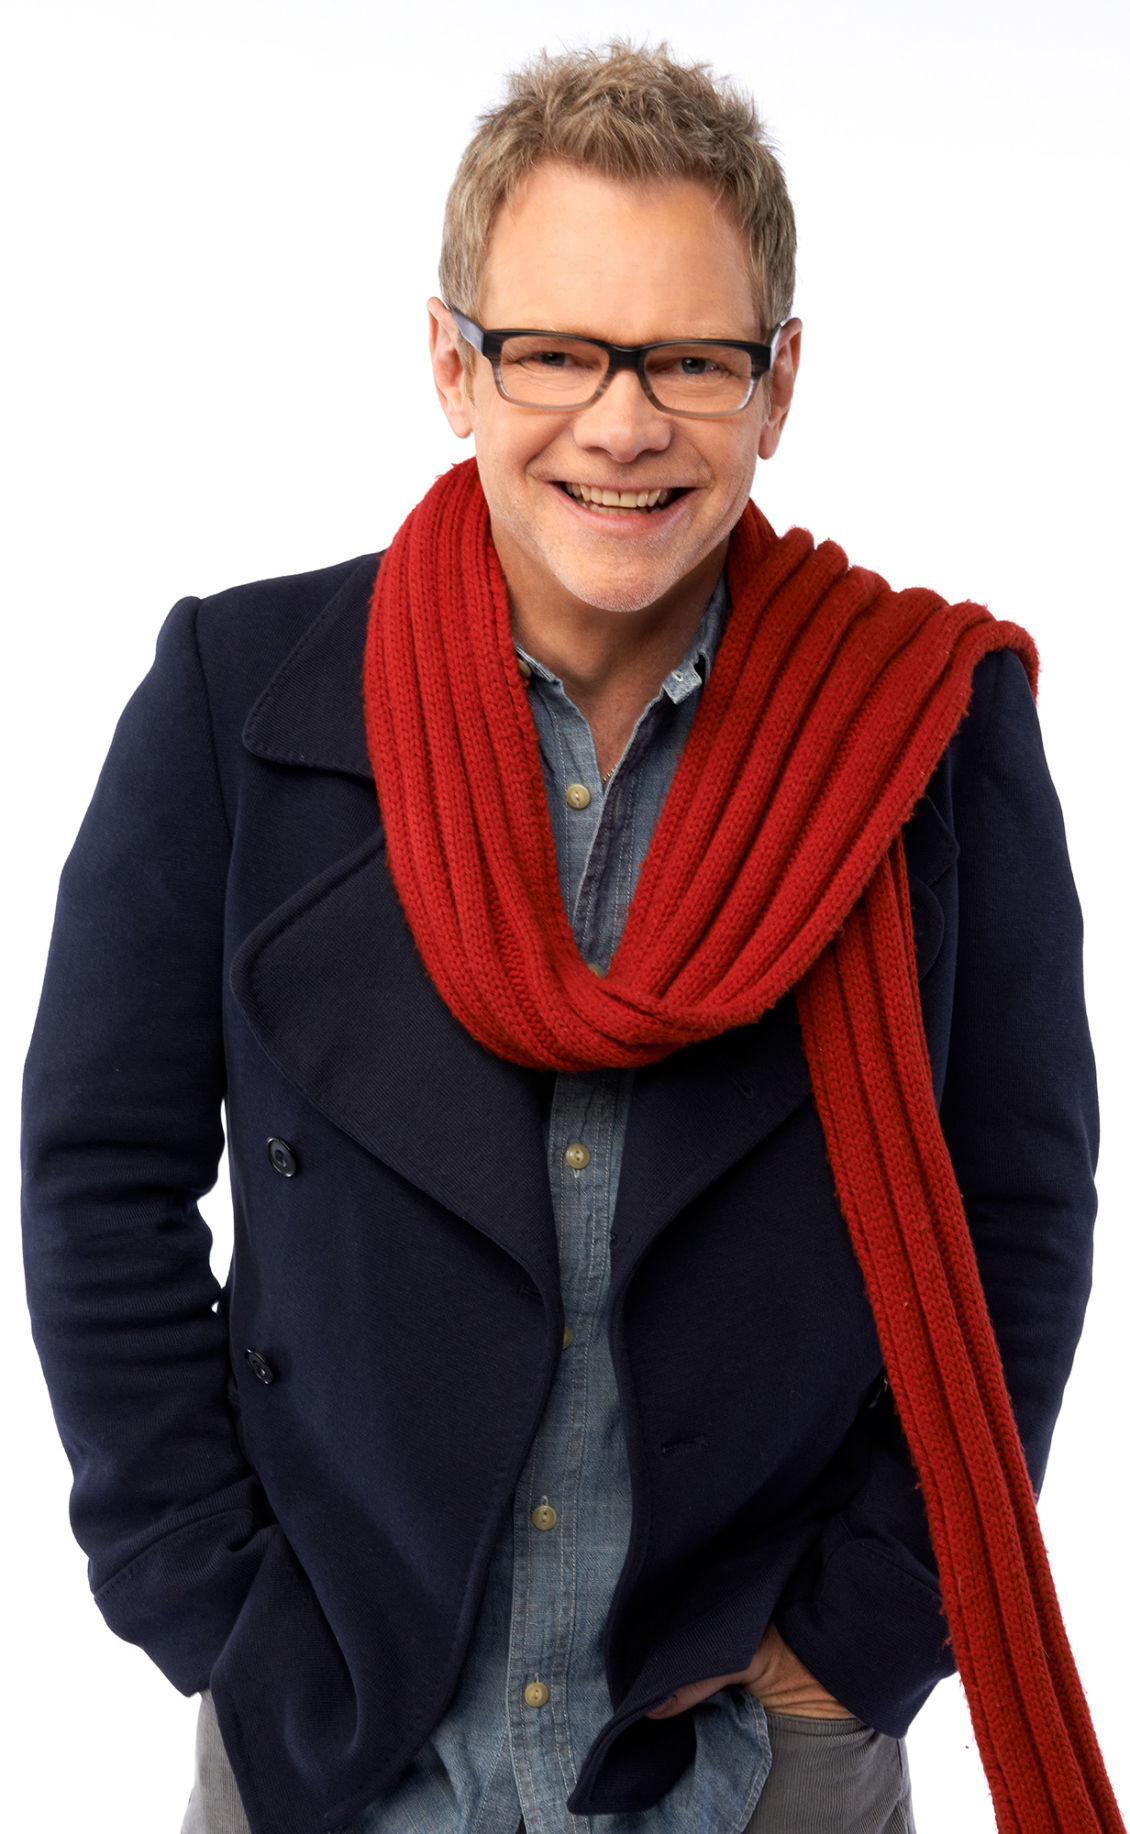 Steven Curtis Chapman to bring 'JOY' to Lincoln | Faith and Values ...